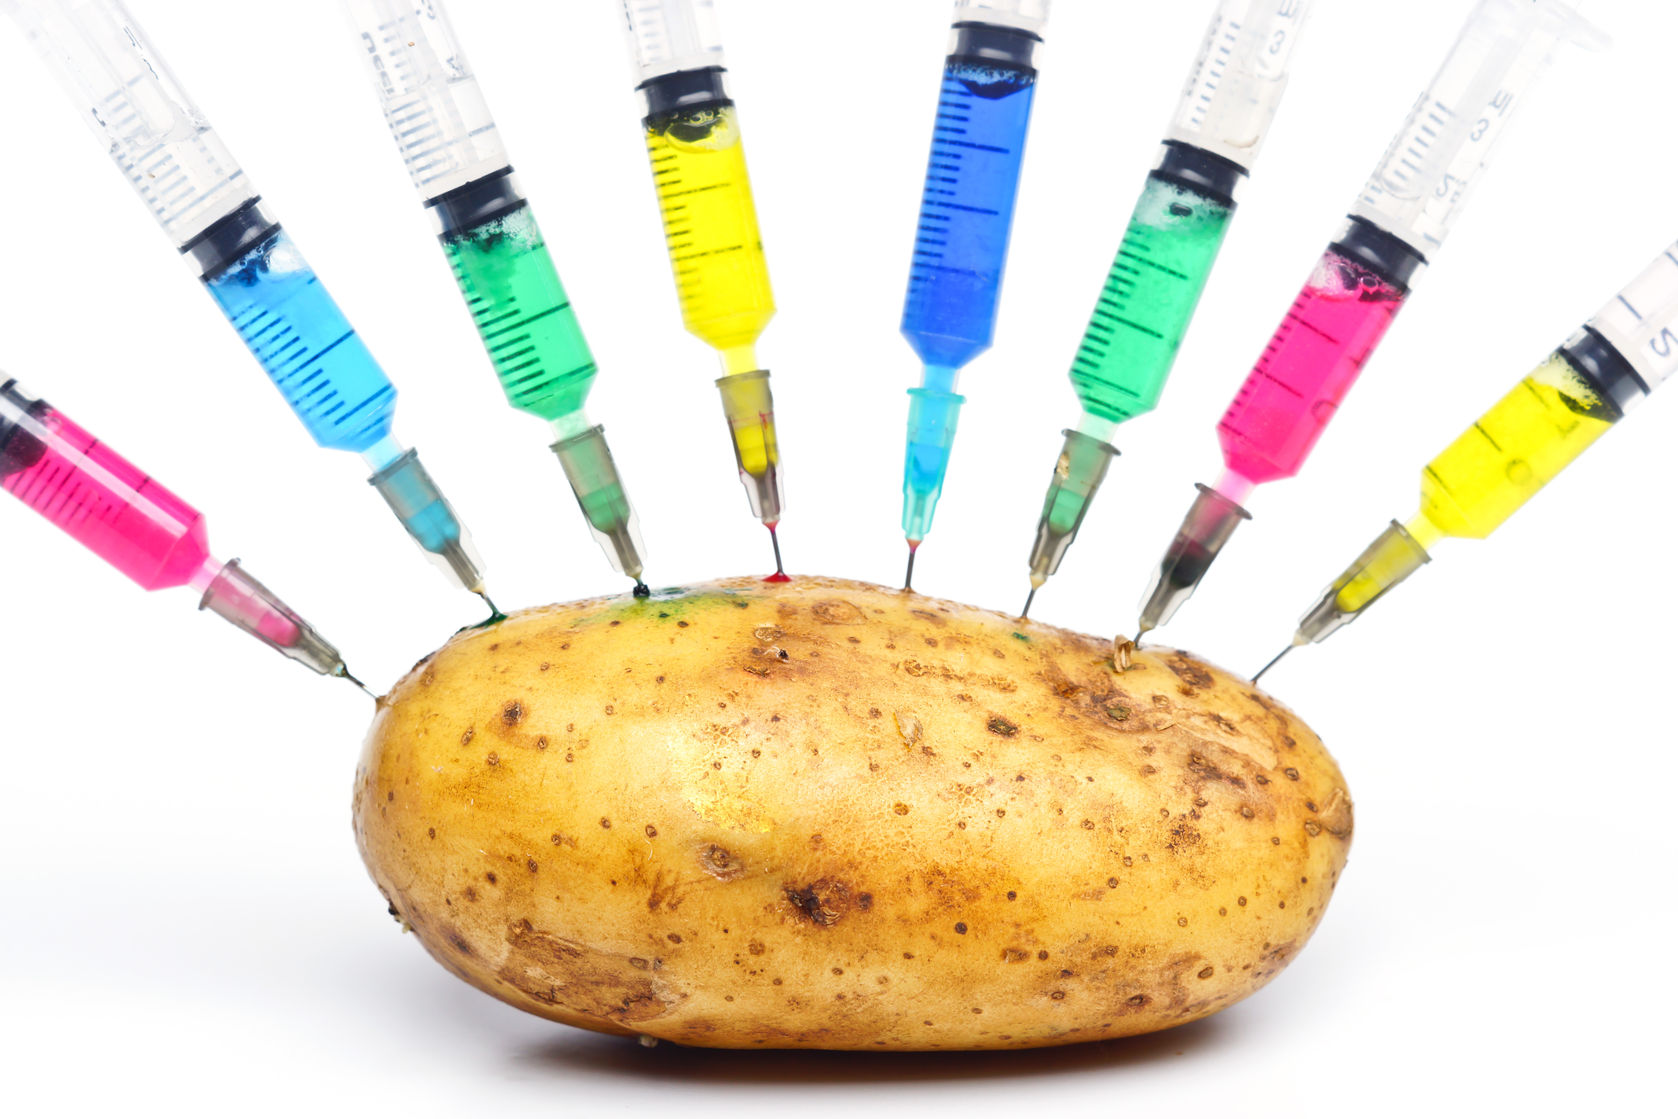 the controversy surrounding genetically modified organisms in todays world The subject of genetically modified organisms (gmos) is one of the most hotly  debated food and environmental topics in the world today.